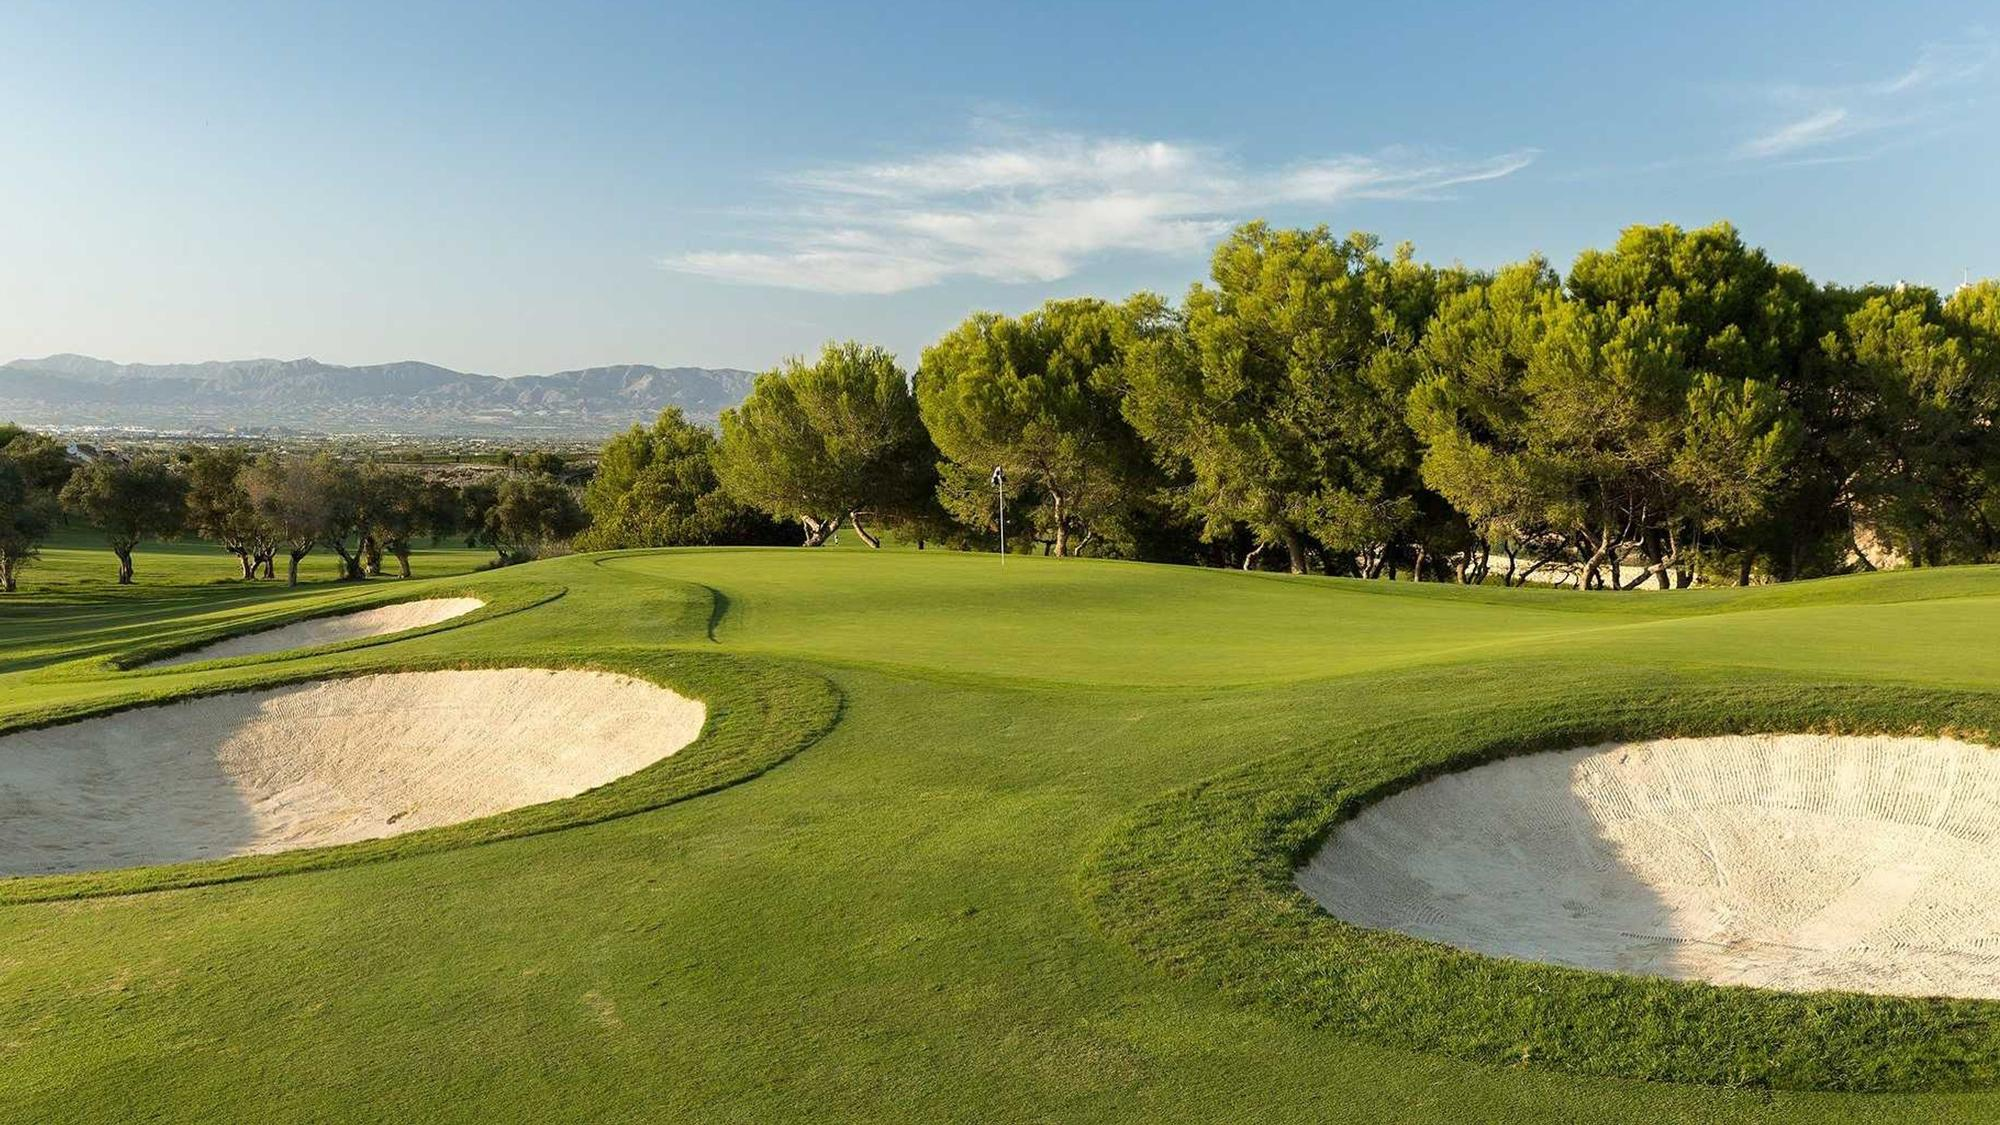 View La Finca Golf Club's lovely golf course in brilliant Costa Blanca.